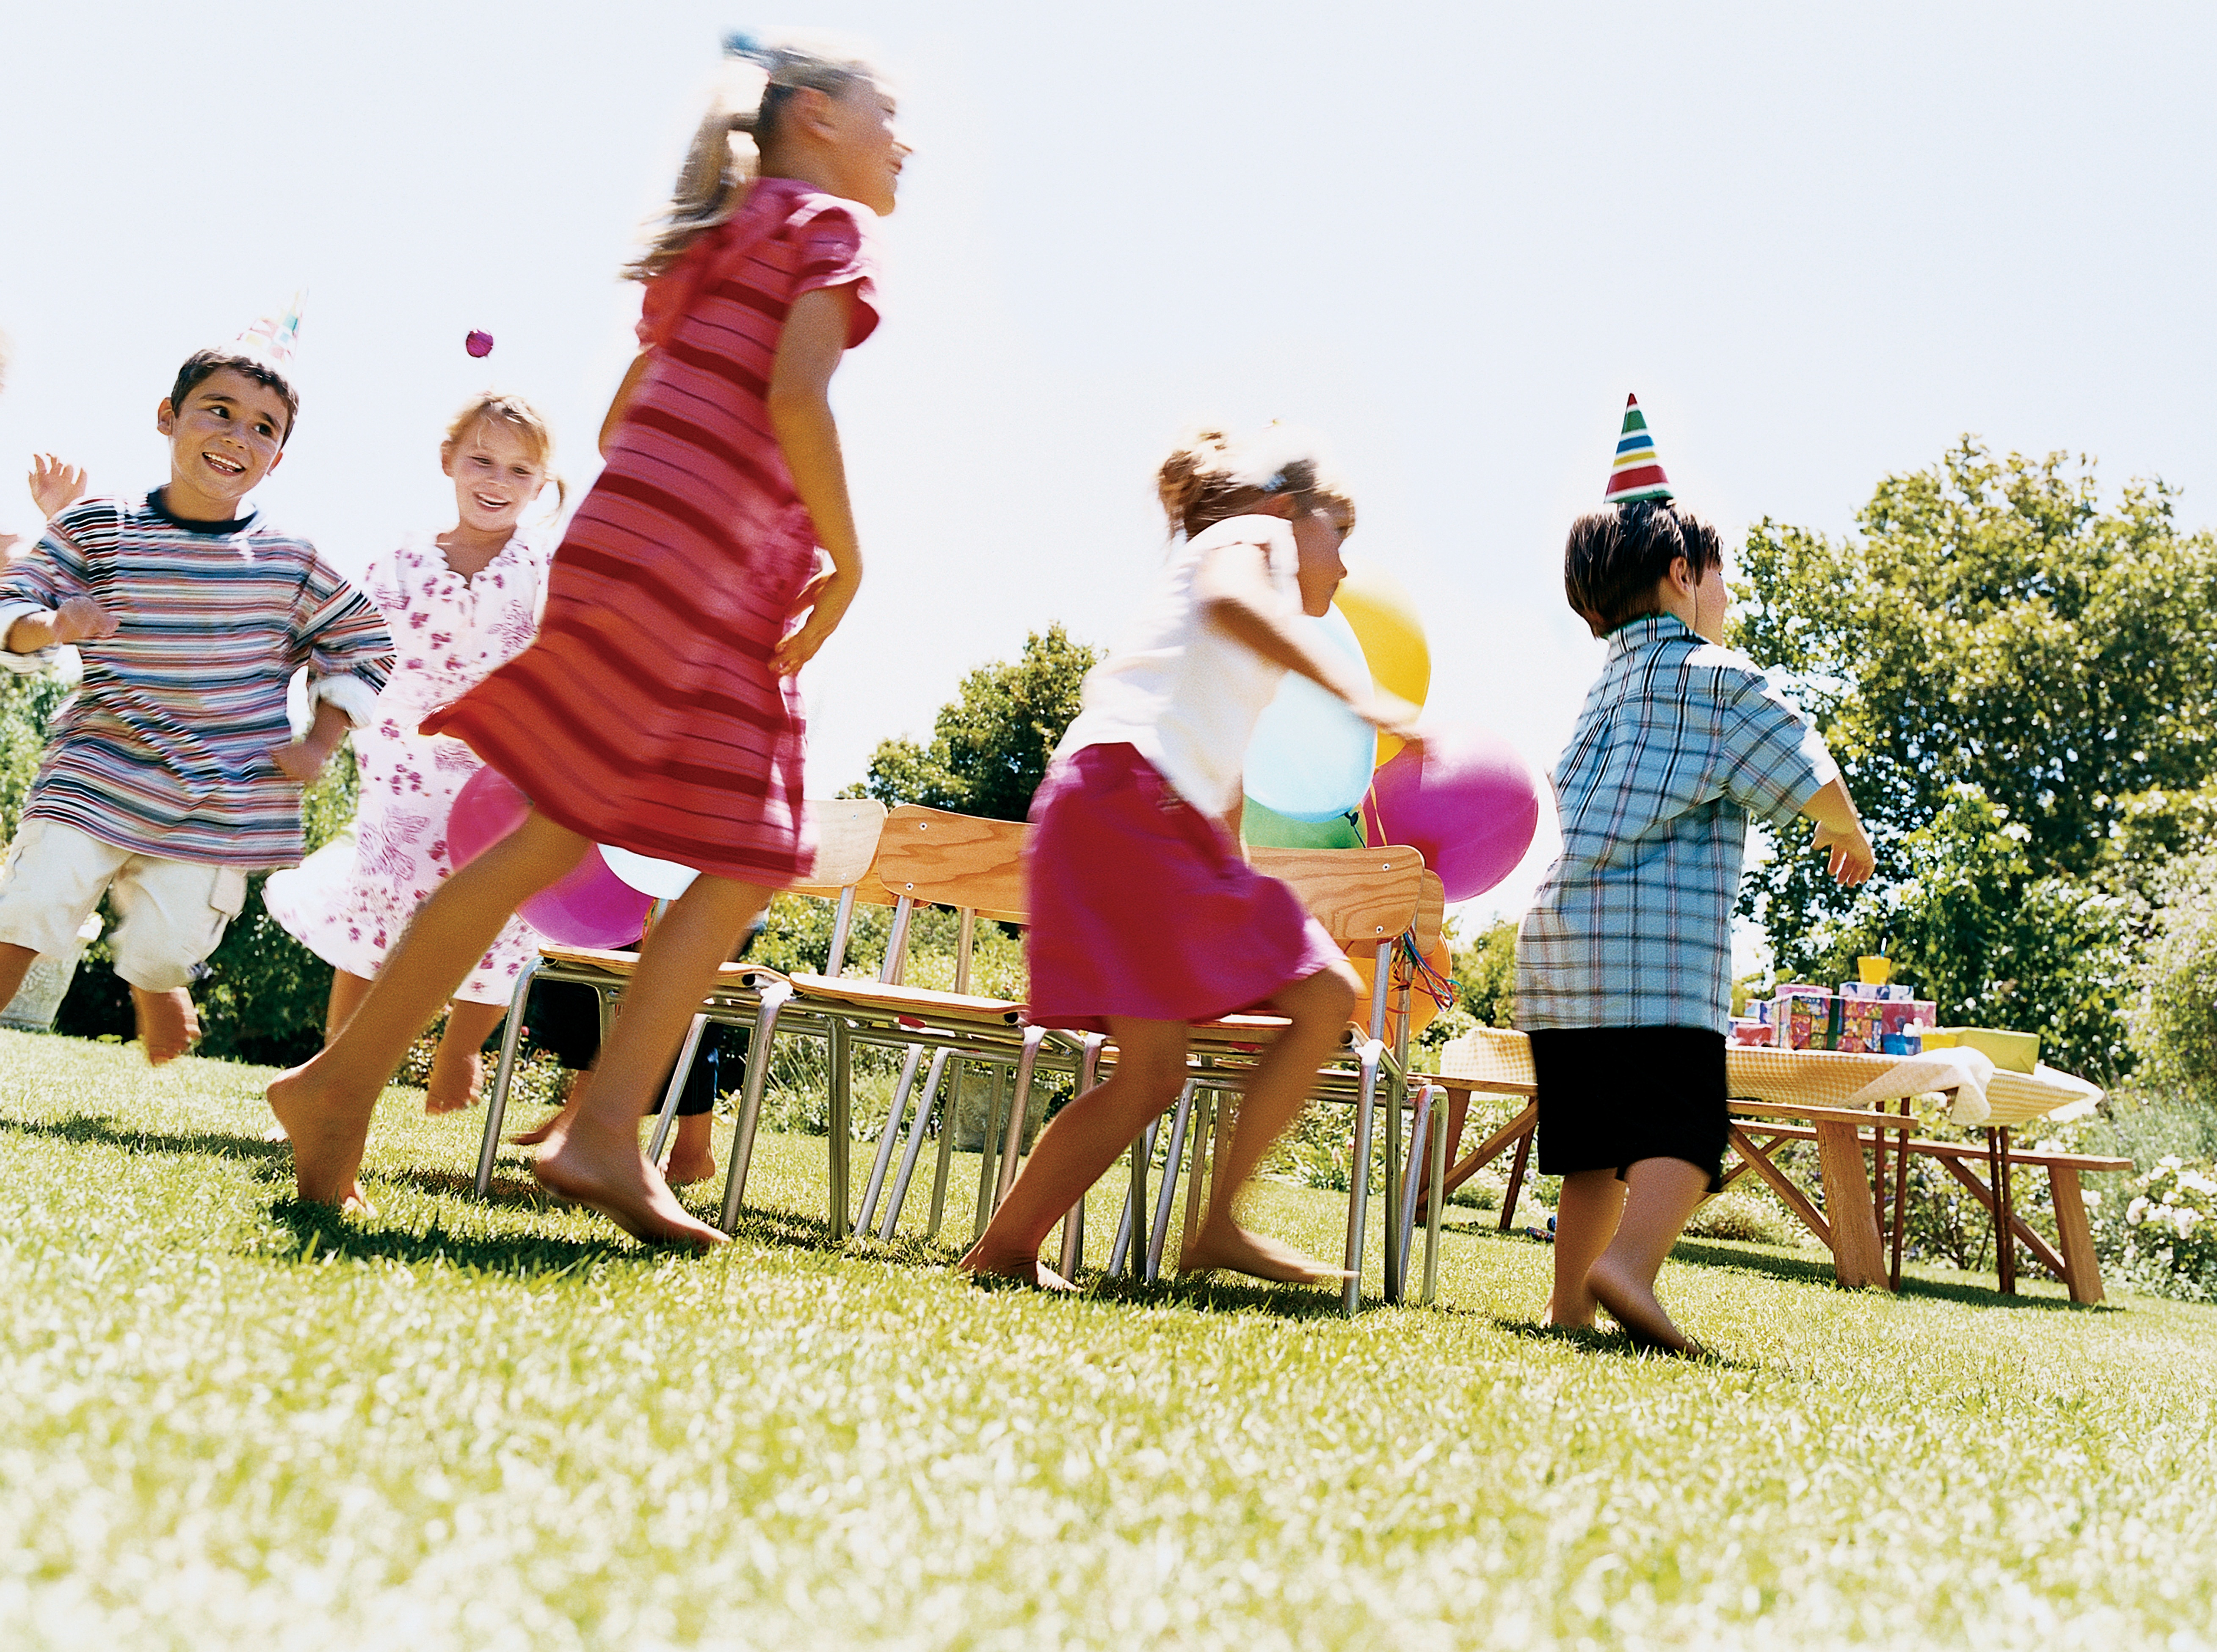 Creative Ideas for Summertime Kids' Parties + Cook Portable Warehouses